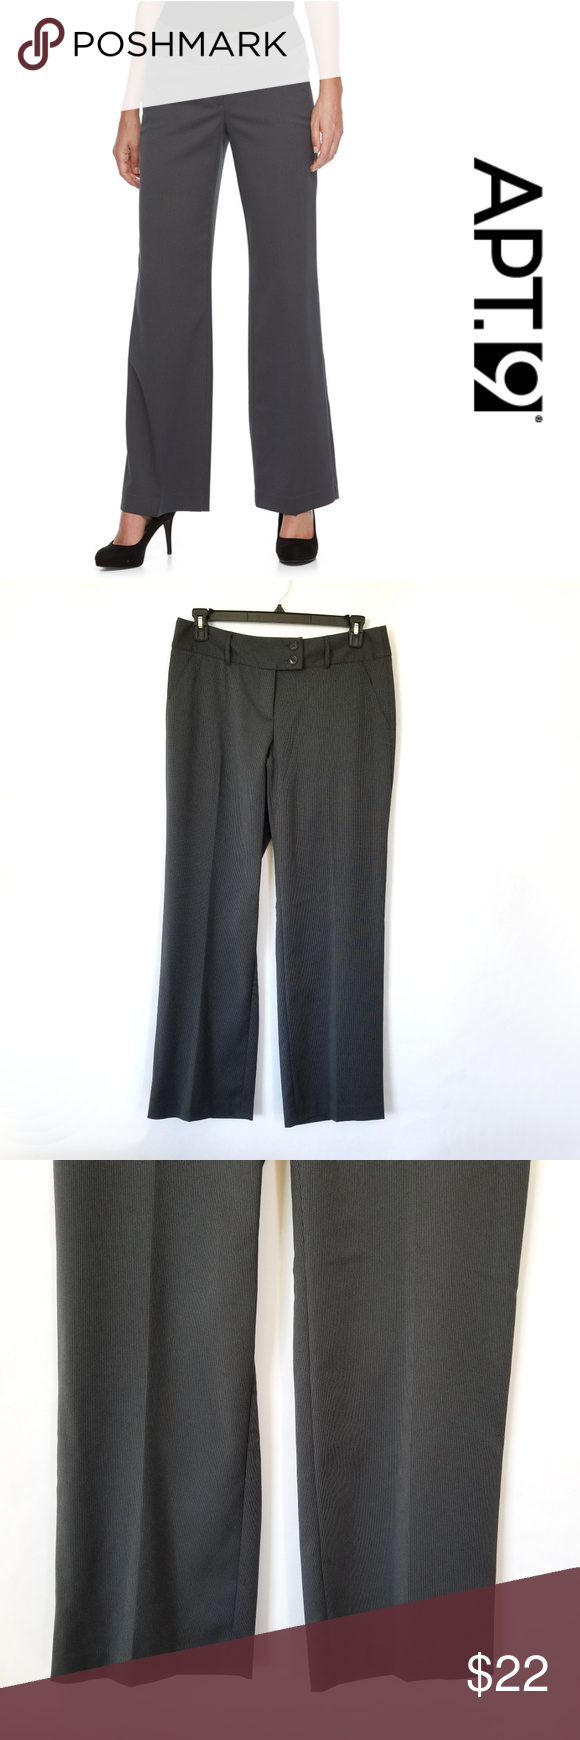 5edeac26a8bc0 Apt. 9 Modern Fit Midrise Wide-Leg Dress Pants 12 New with tags.